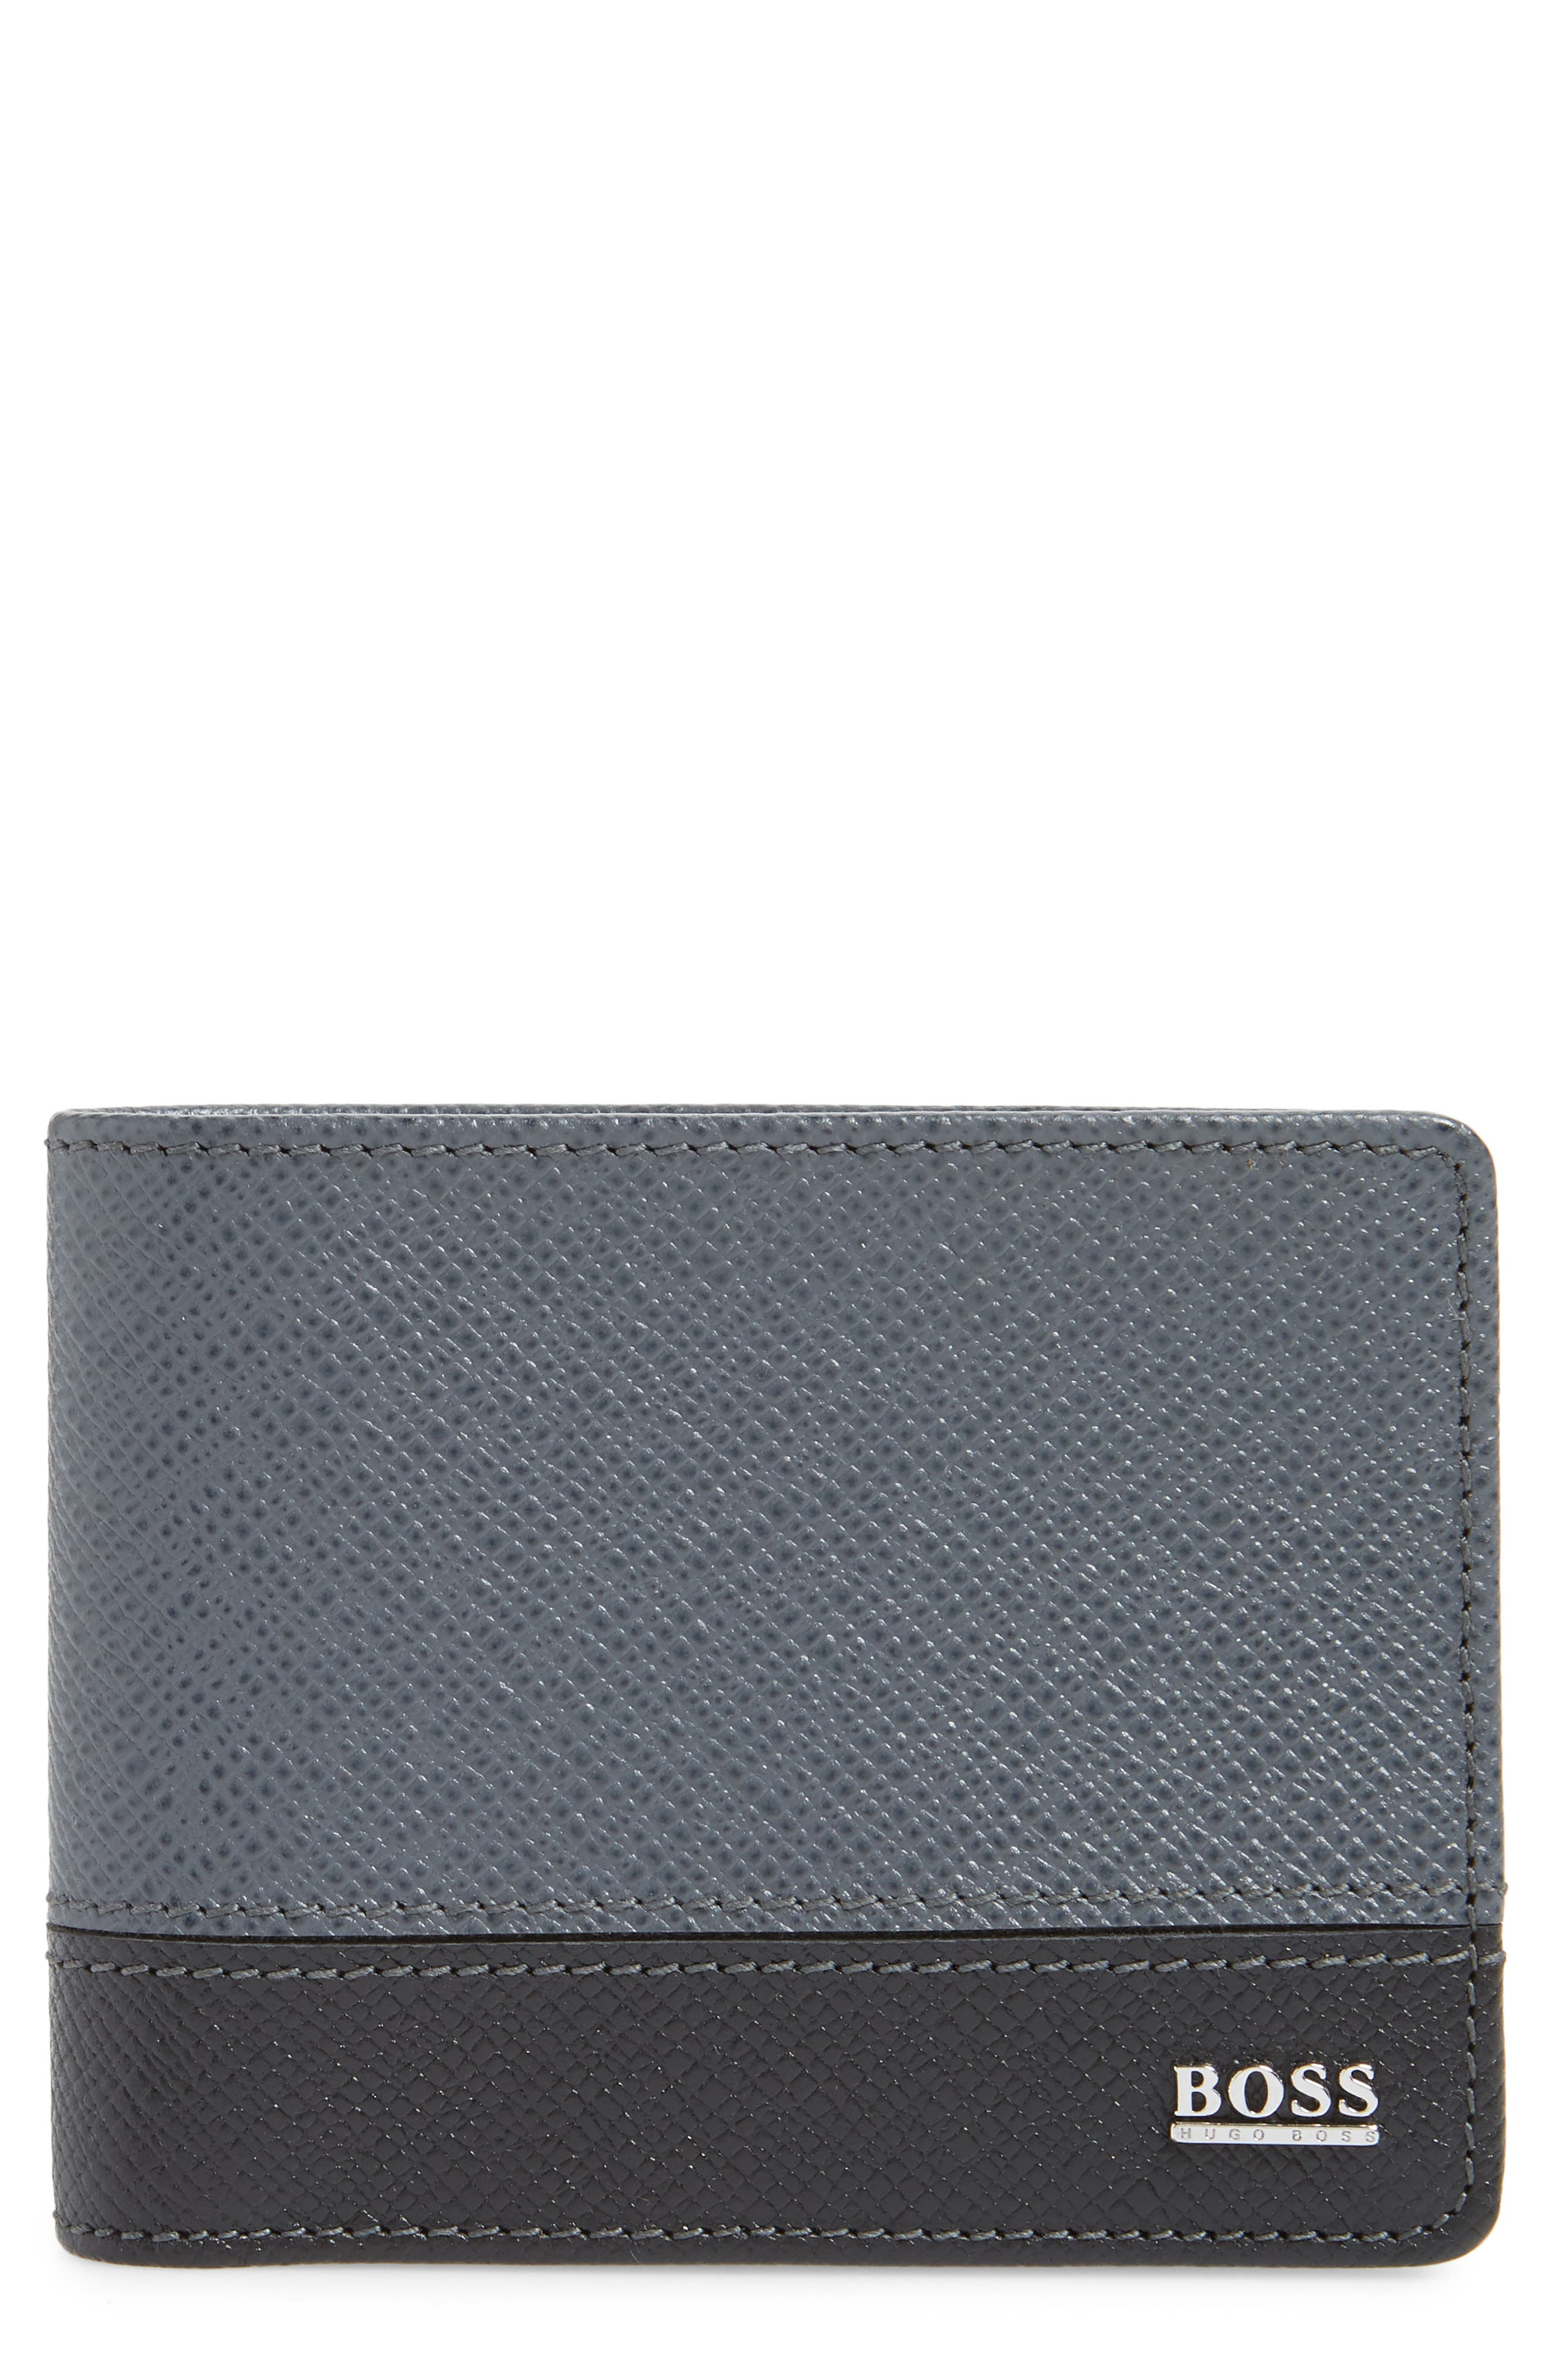 BOSS, Embossed Leather Wallet, Main thumbnail 1, color, DARK GREY